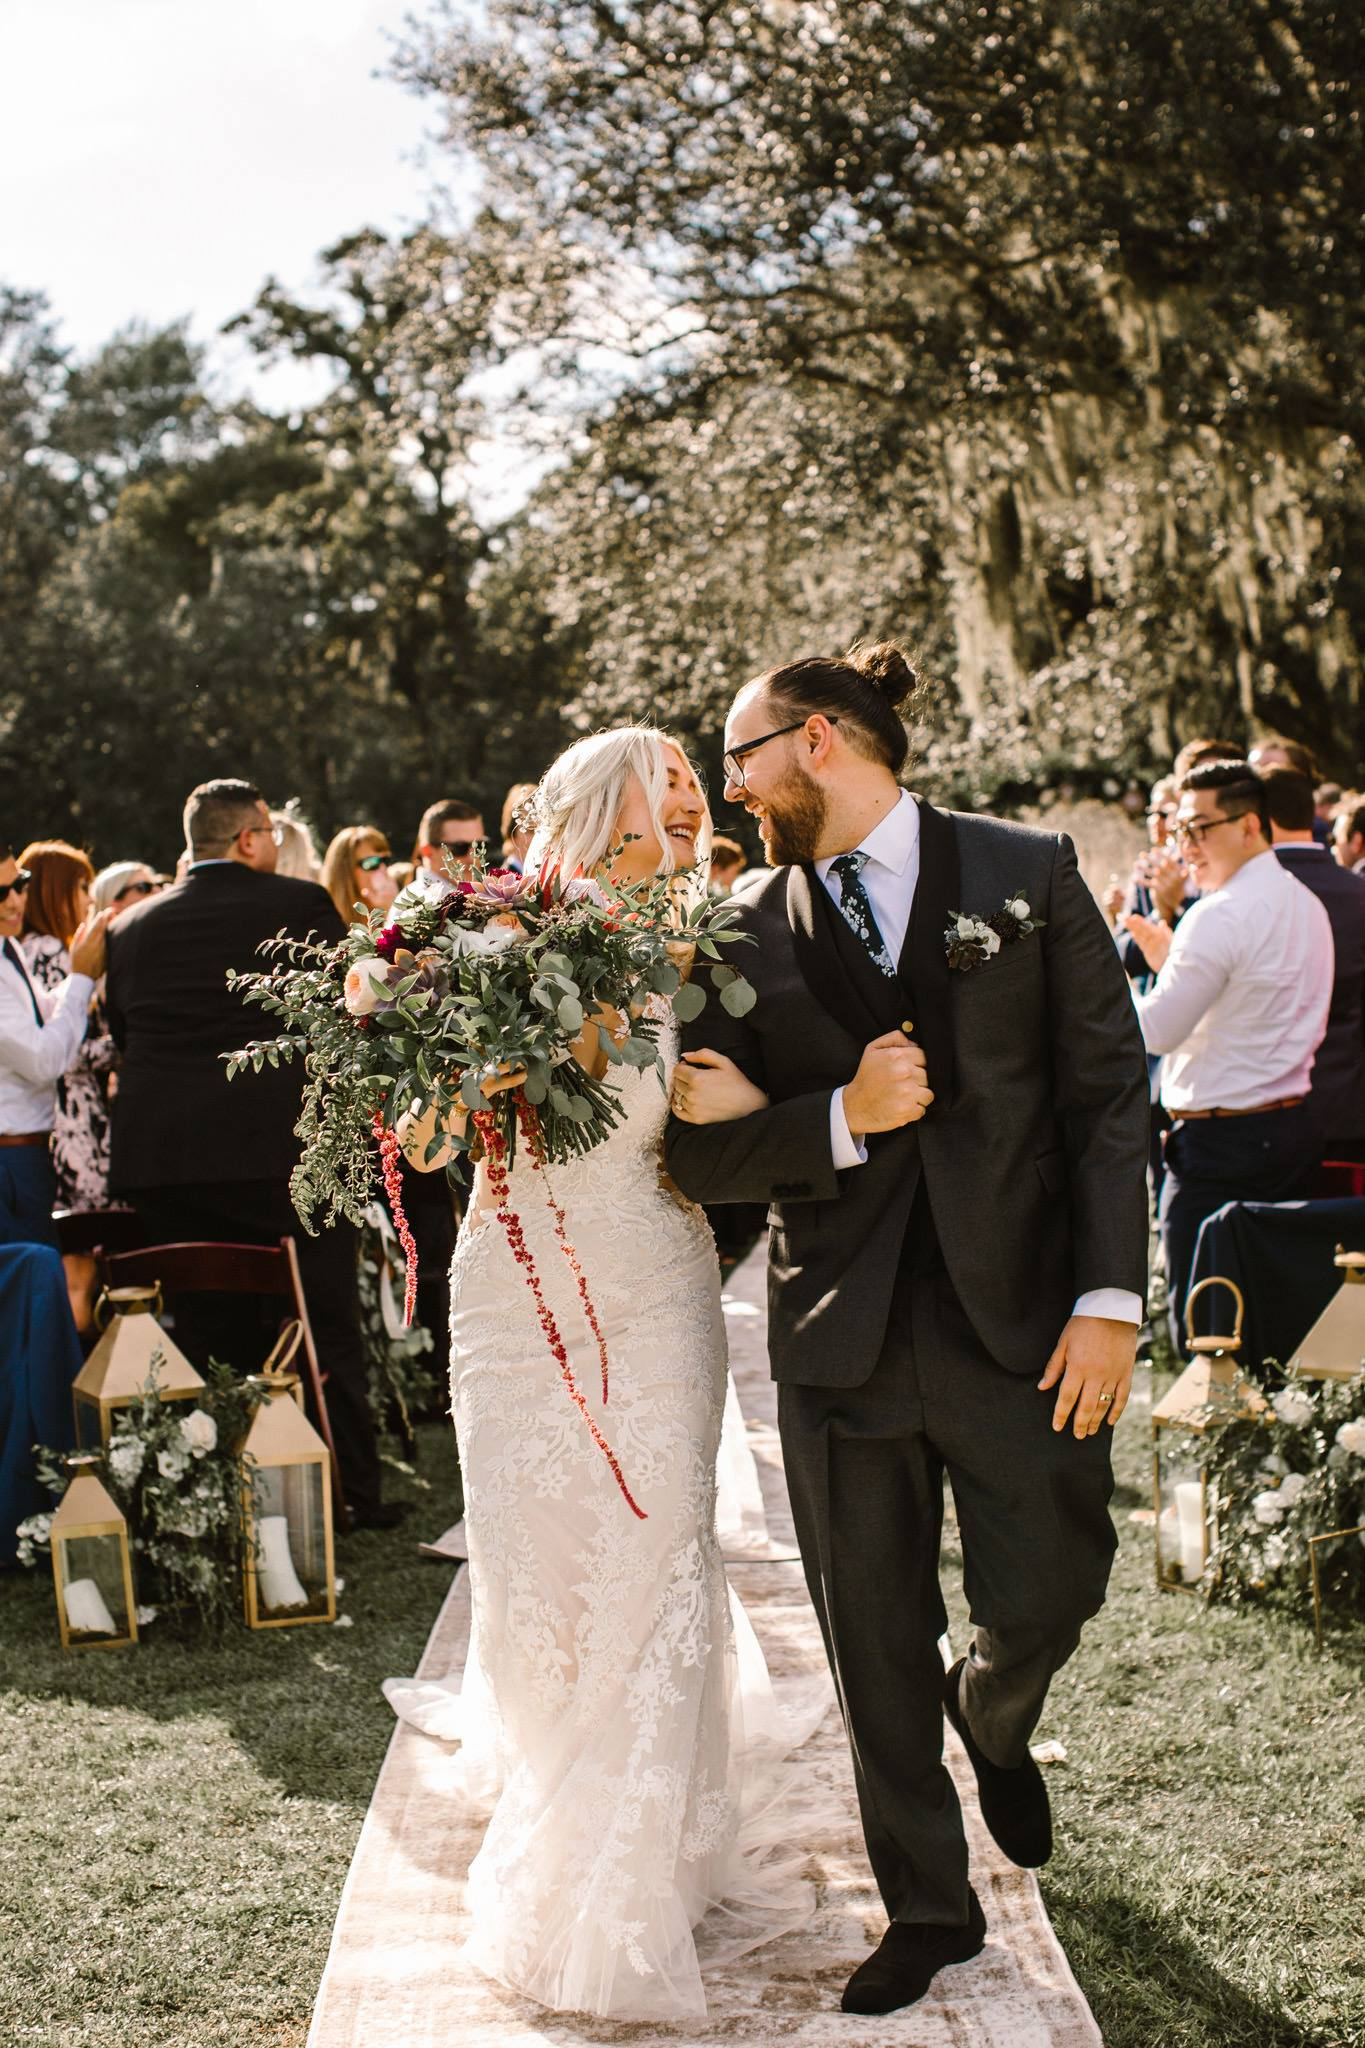 Bramble Packages - With three different Packages, three different environments, and a Rustic Pole Barn to conclude your event in, there are many different ways to plan your perfect day.